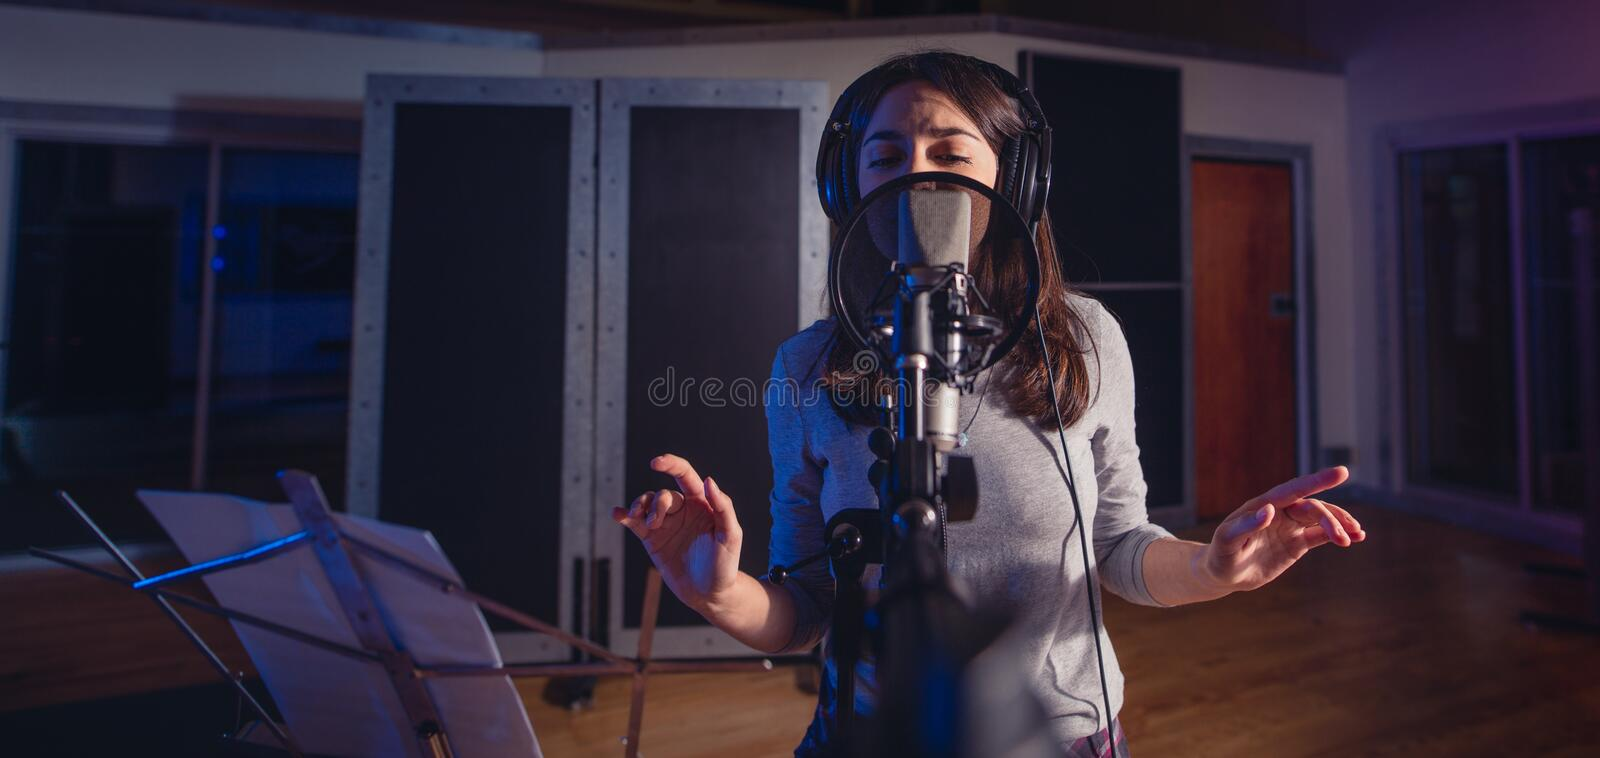 Female singer singing a song in recording studio royalty free stock image